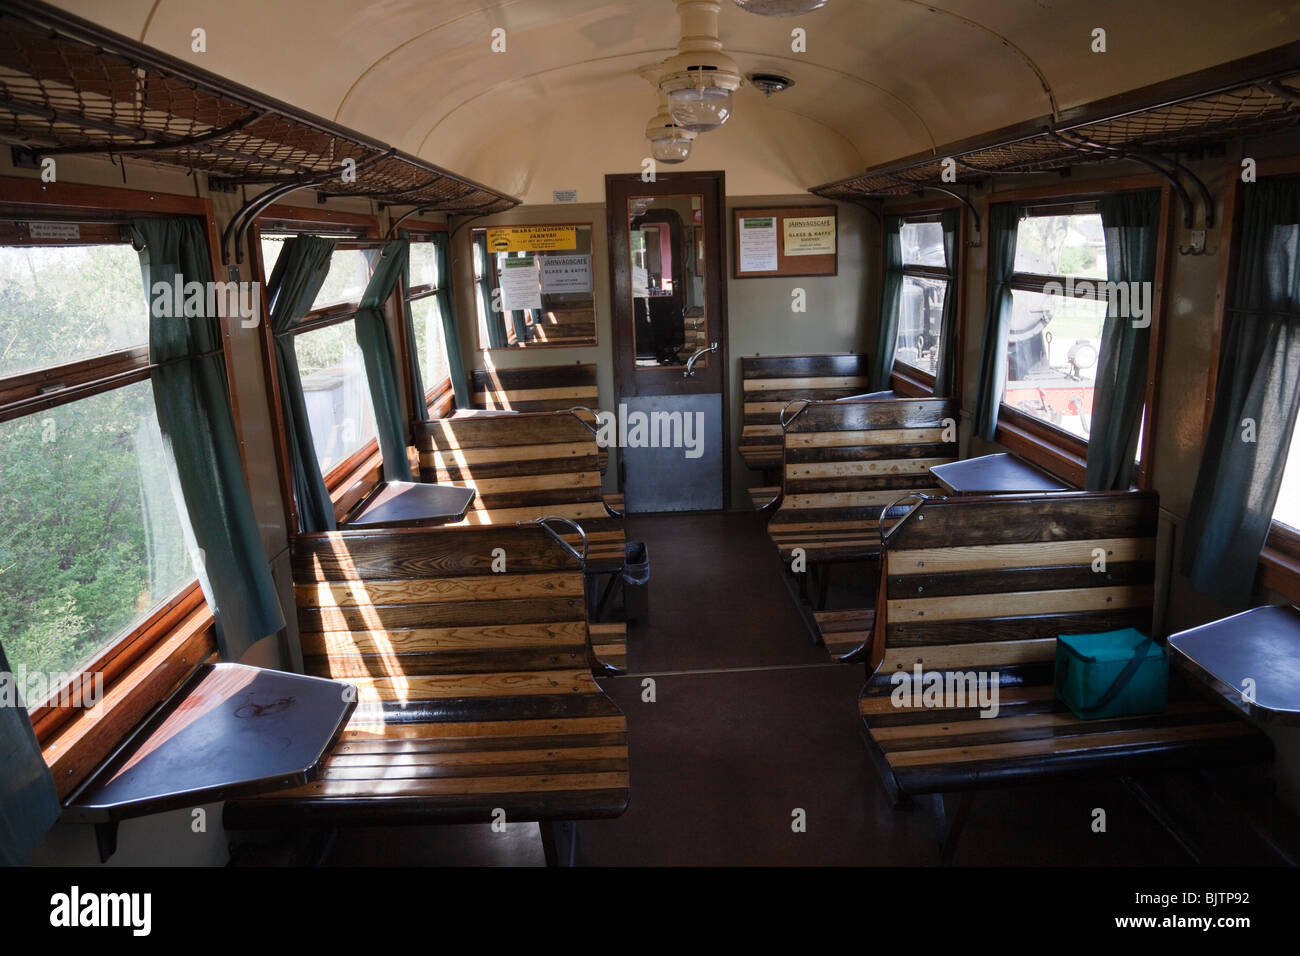 Surprising Old Wooden Train Seat Stock Photos Old Wooden Train Seat Machost Co Dining Chair Design Ideas Machostcouk